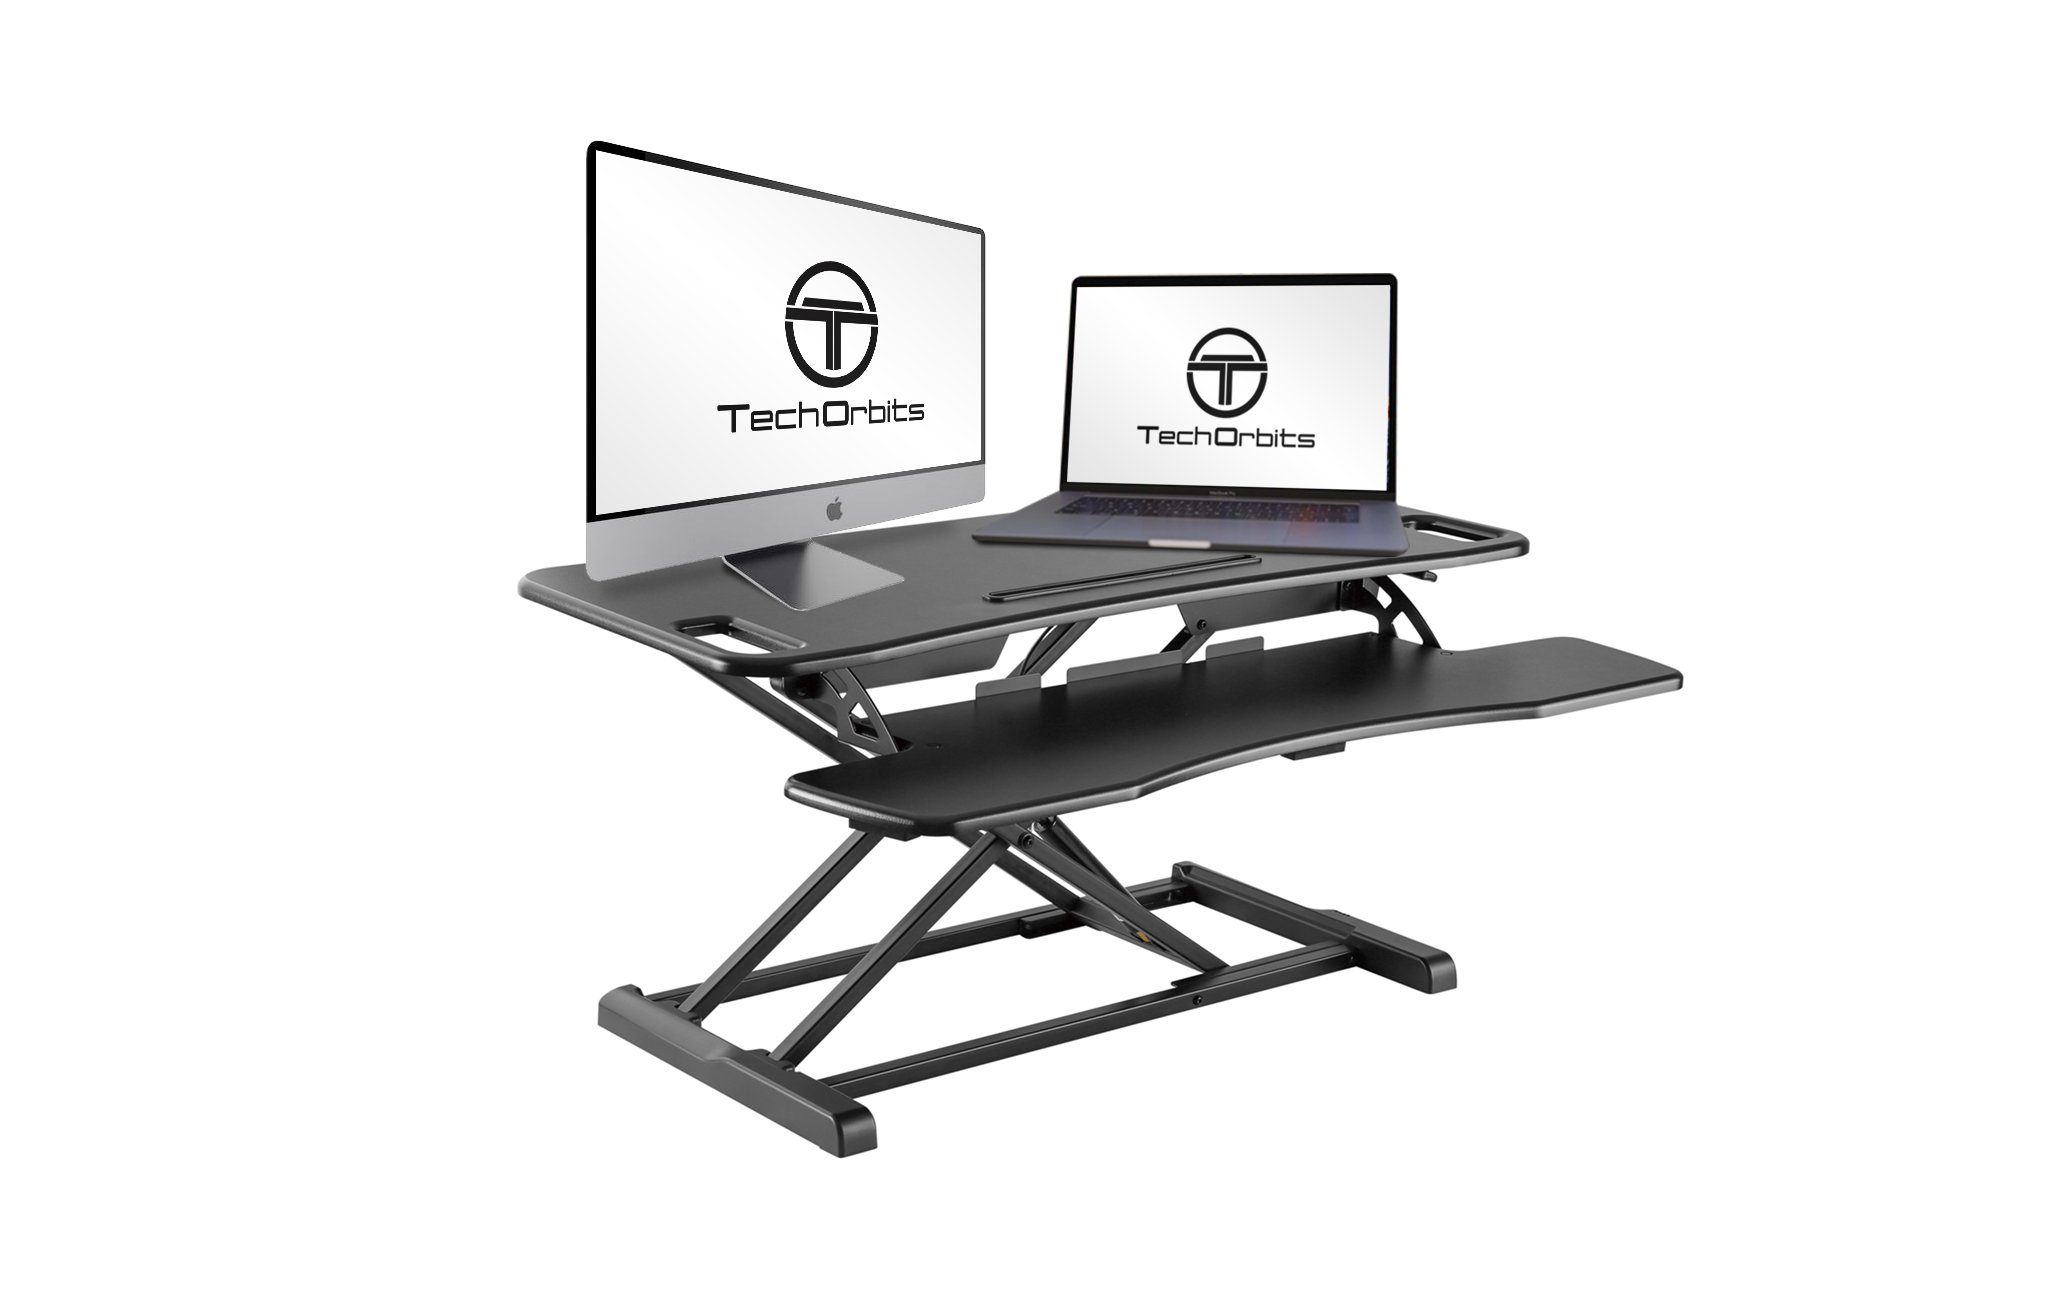 TechOrbits Rise-X Pro Standing Desk Workstation - Stand Up Desk Riser Monitor Mount Compatible - Home & Office Height Adjustable Desk - Sit to Stand Workstation - 37'' Black